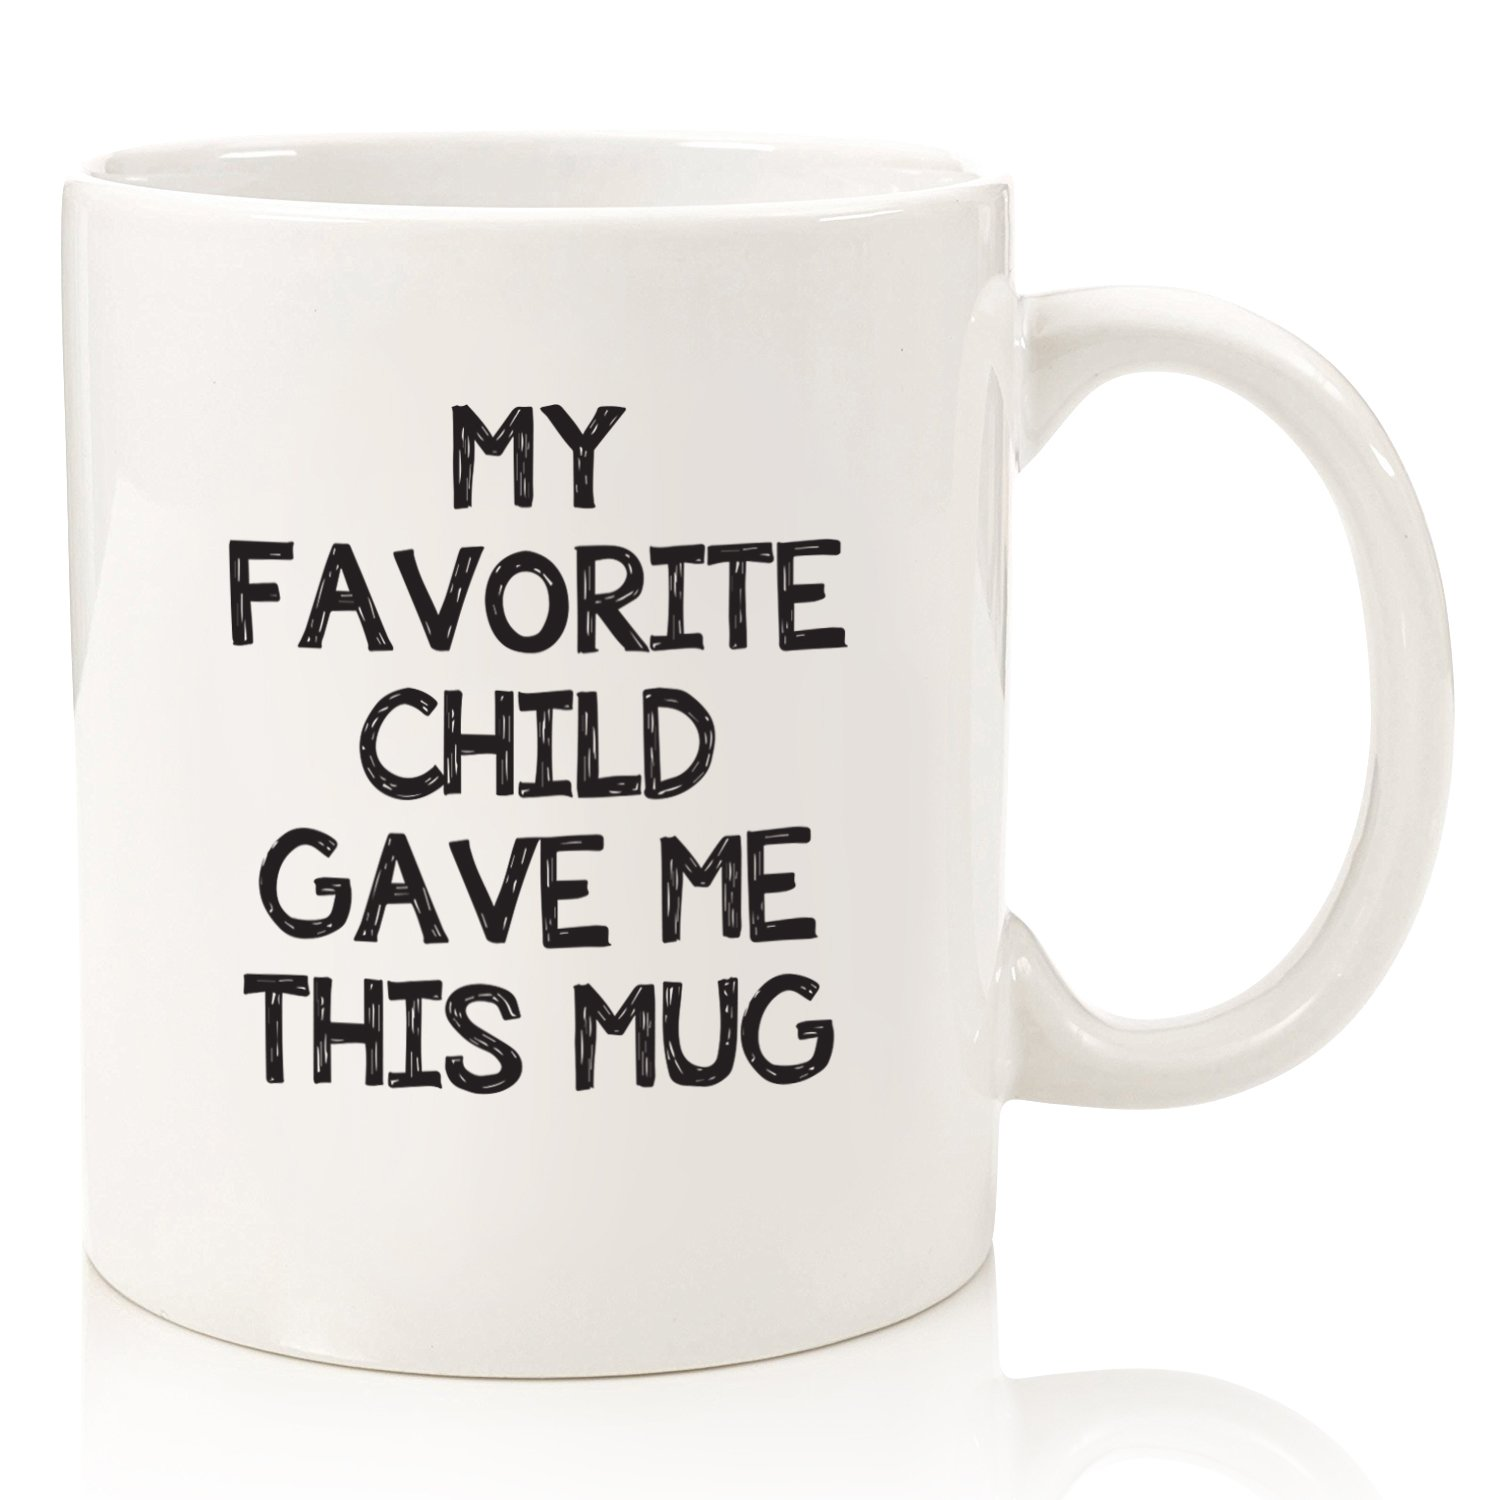 My Favorite Child Gave Me This Funny Coffee Mug - Best Mom & Dad Gifts - Gag Mother's Day Present Idea From Daughter, Son, Kids - Novelty Birthday Gift For Parents - Fun Cup For Men, Women, Him, Her